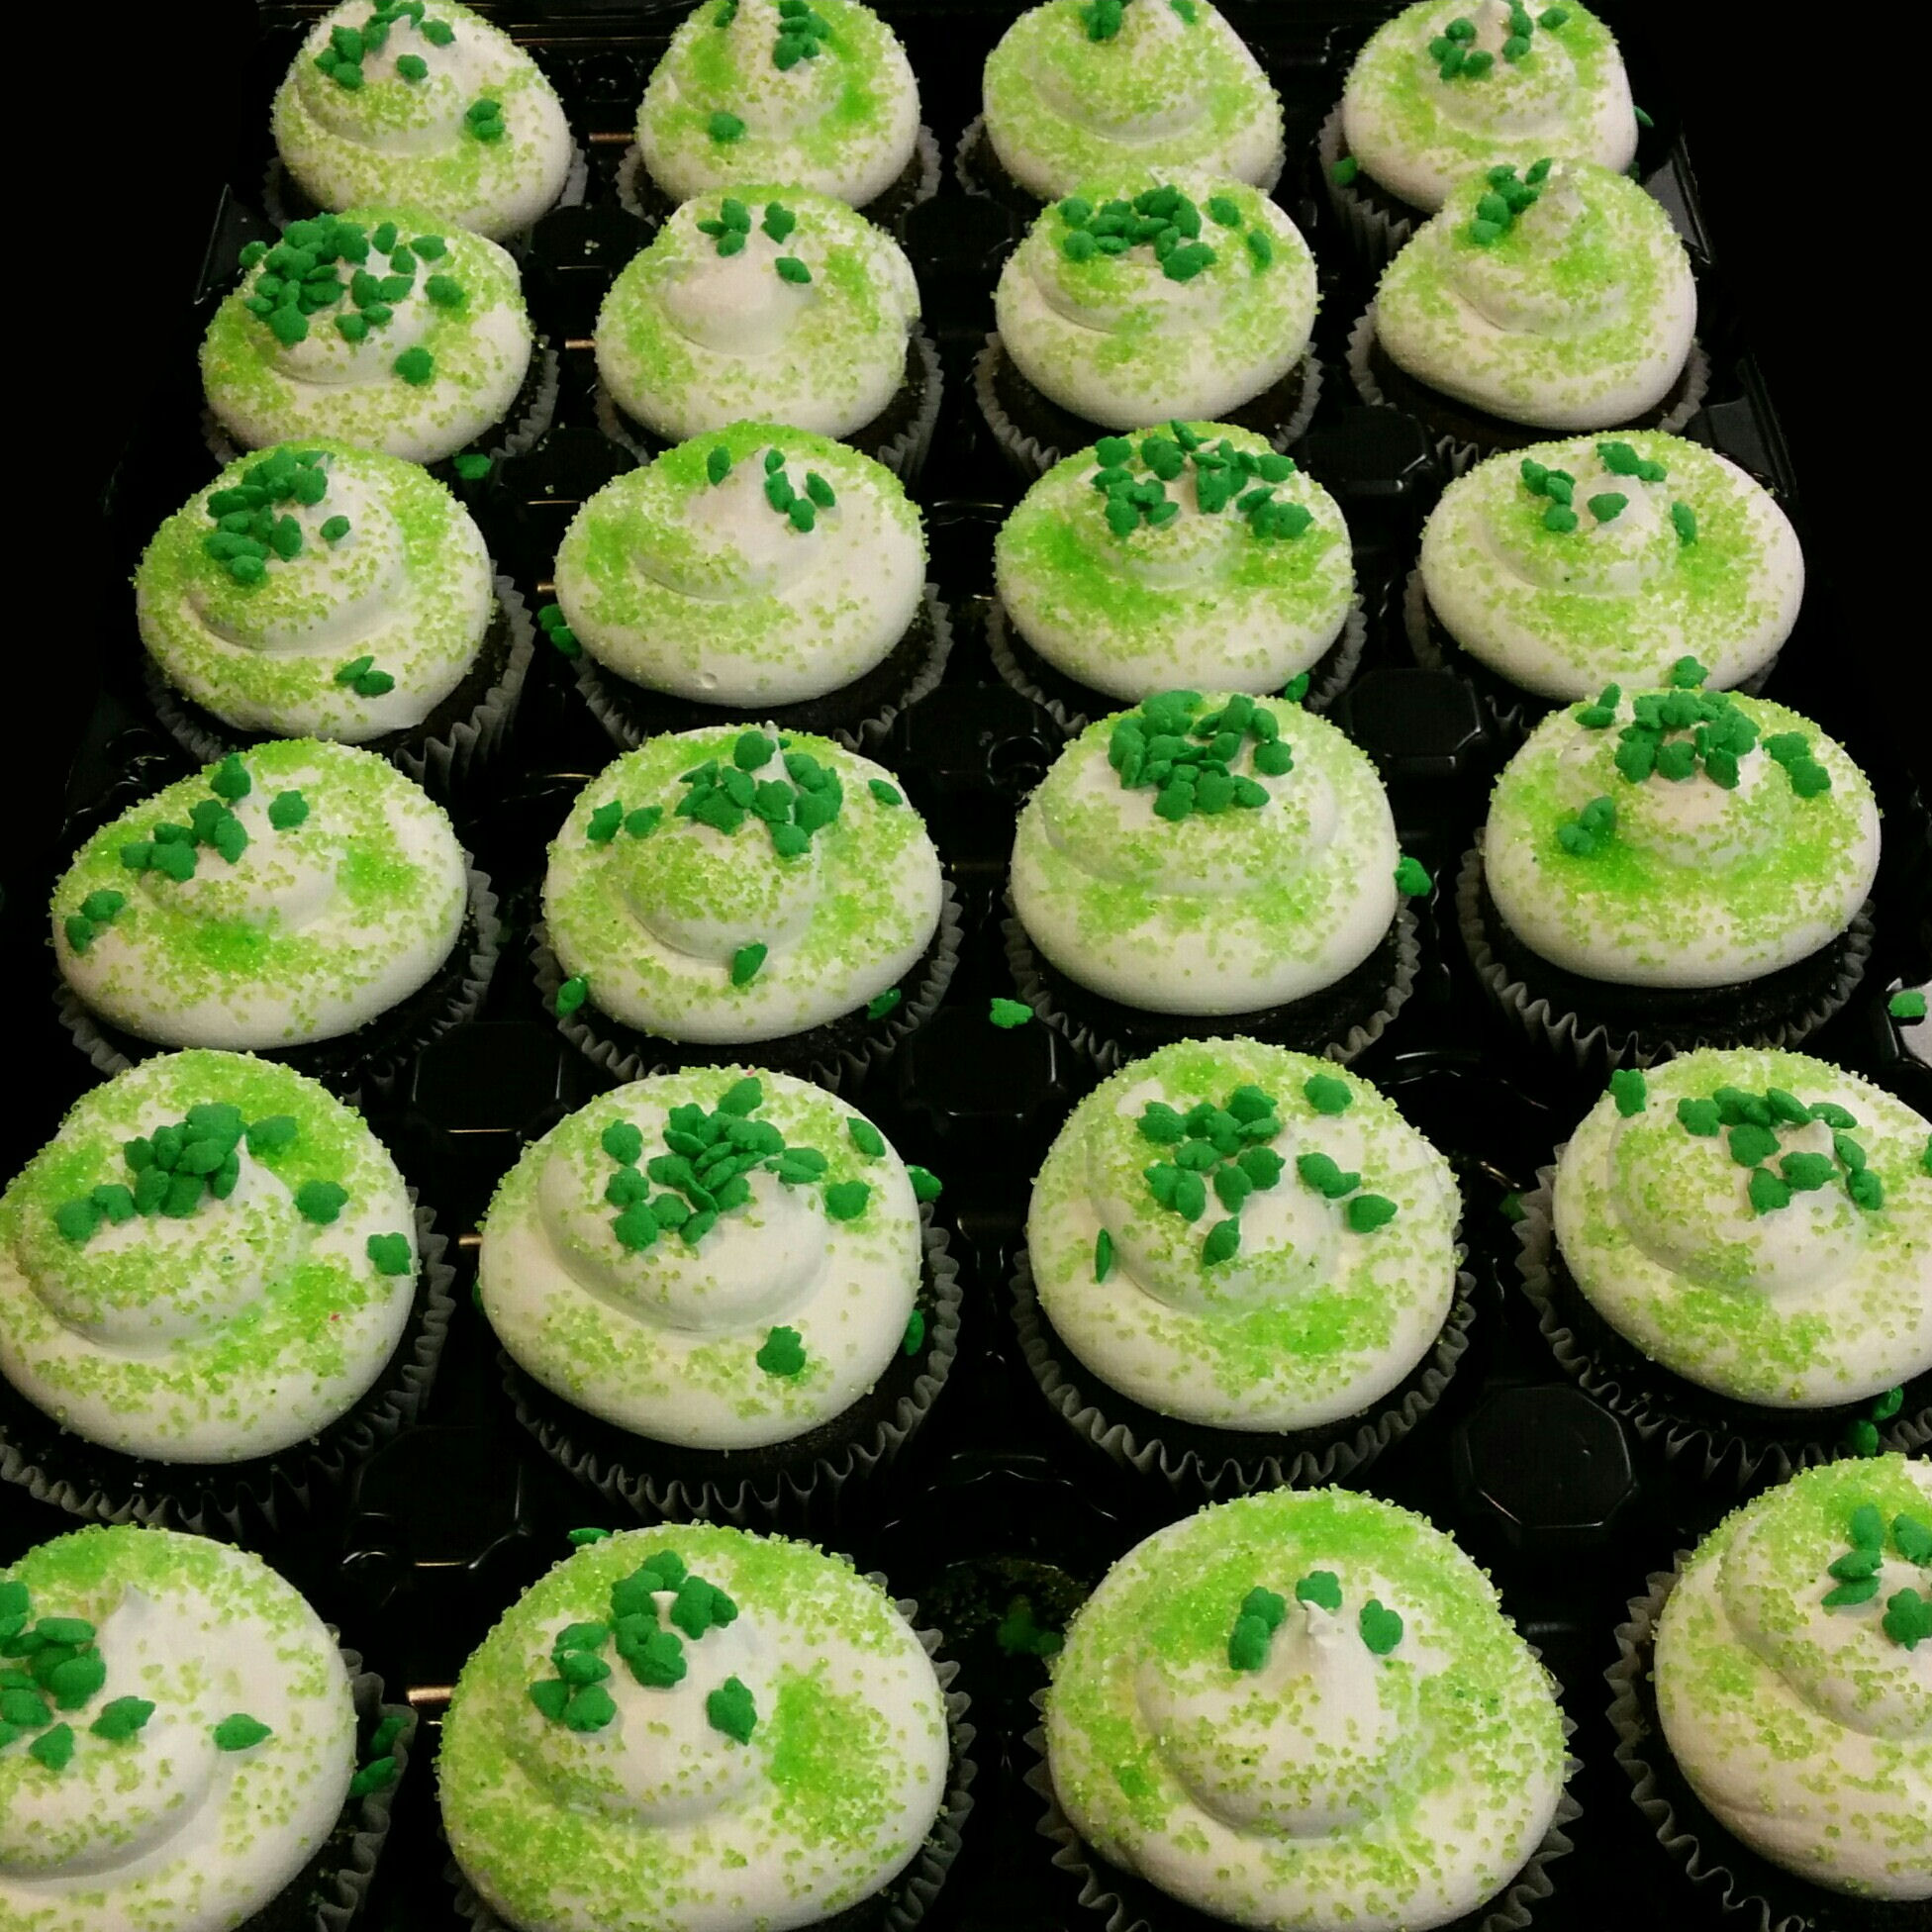 A tray of cupcakes topped with green sprinkles.  Because you can't have a holiday without cupcakes.